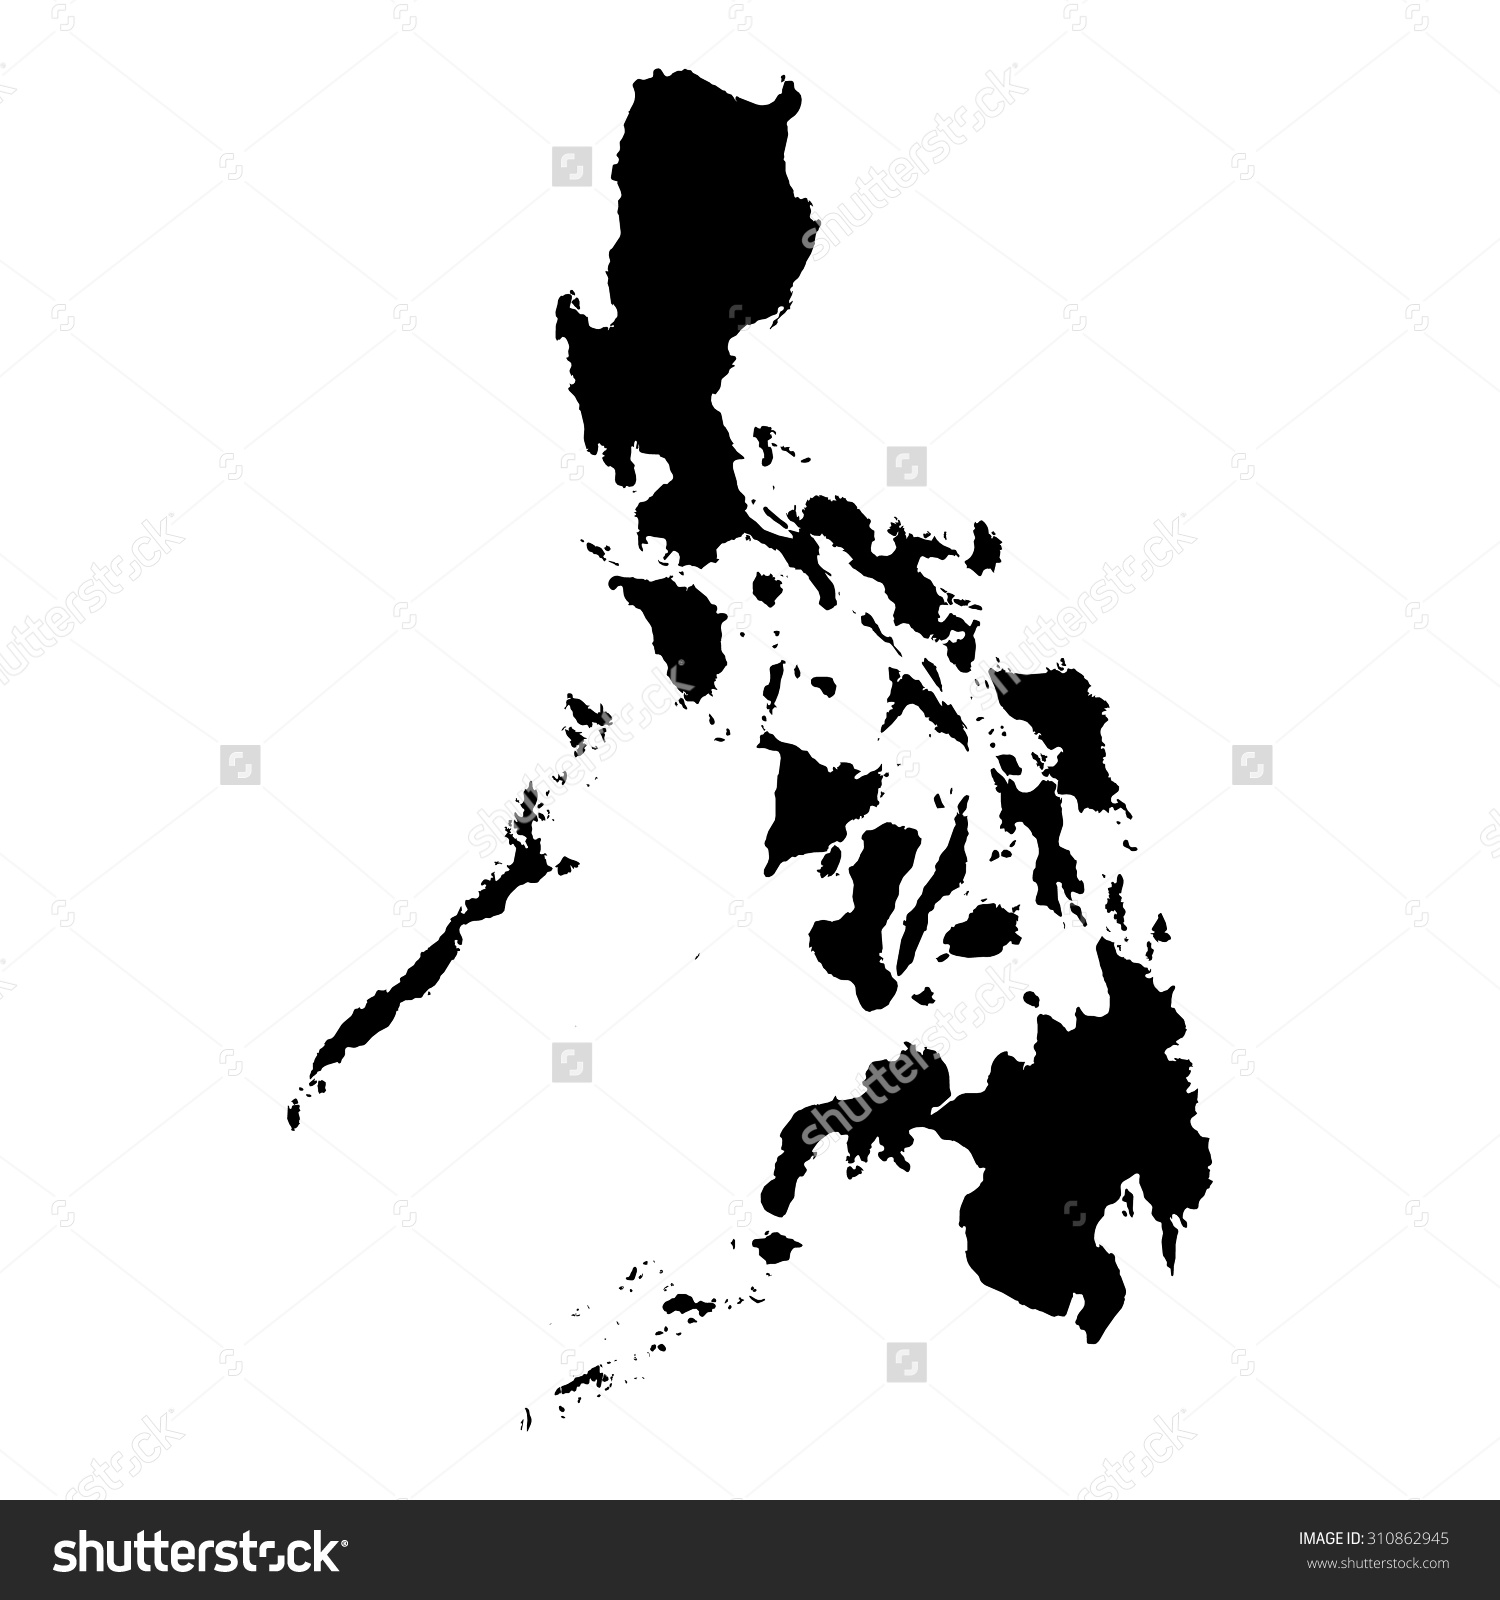 Philipines clipart black and white #13